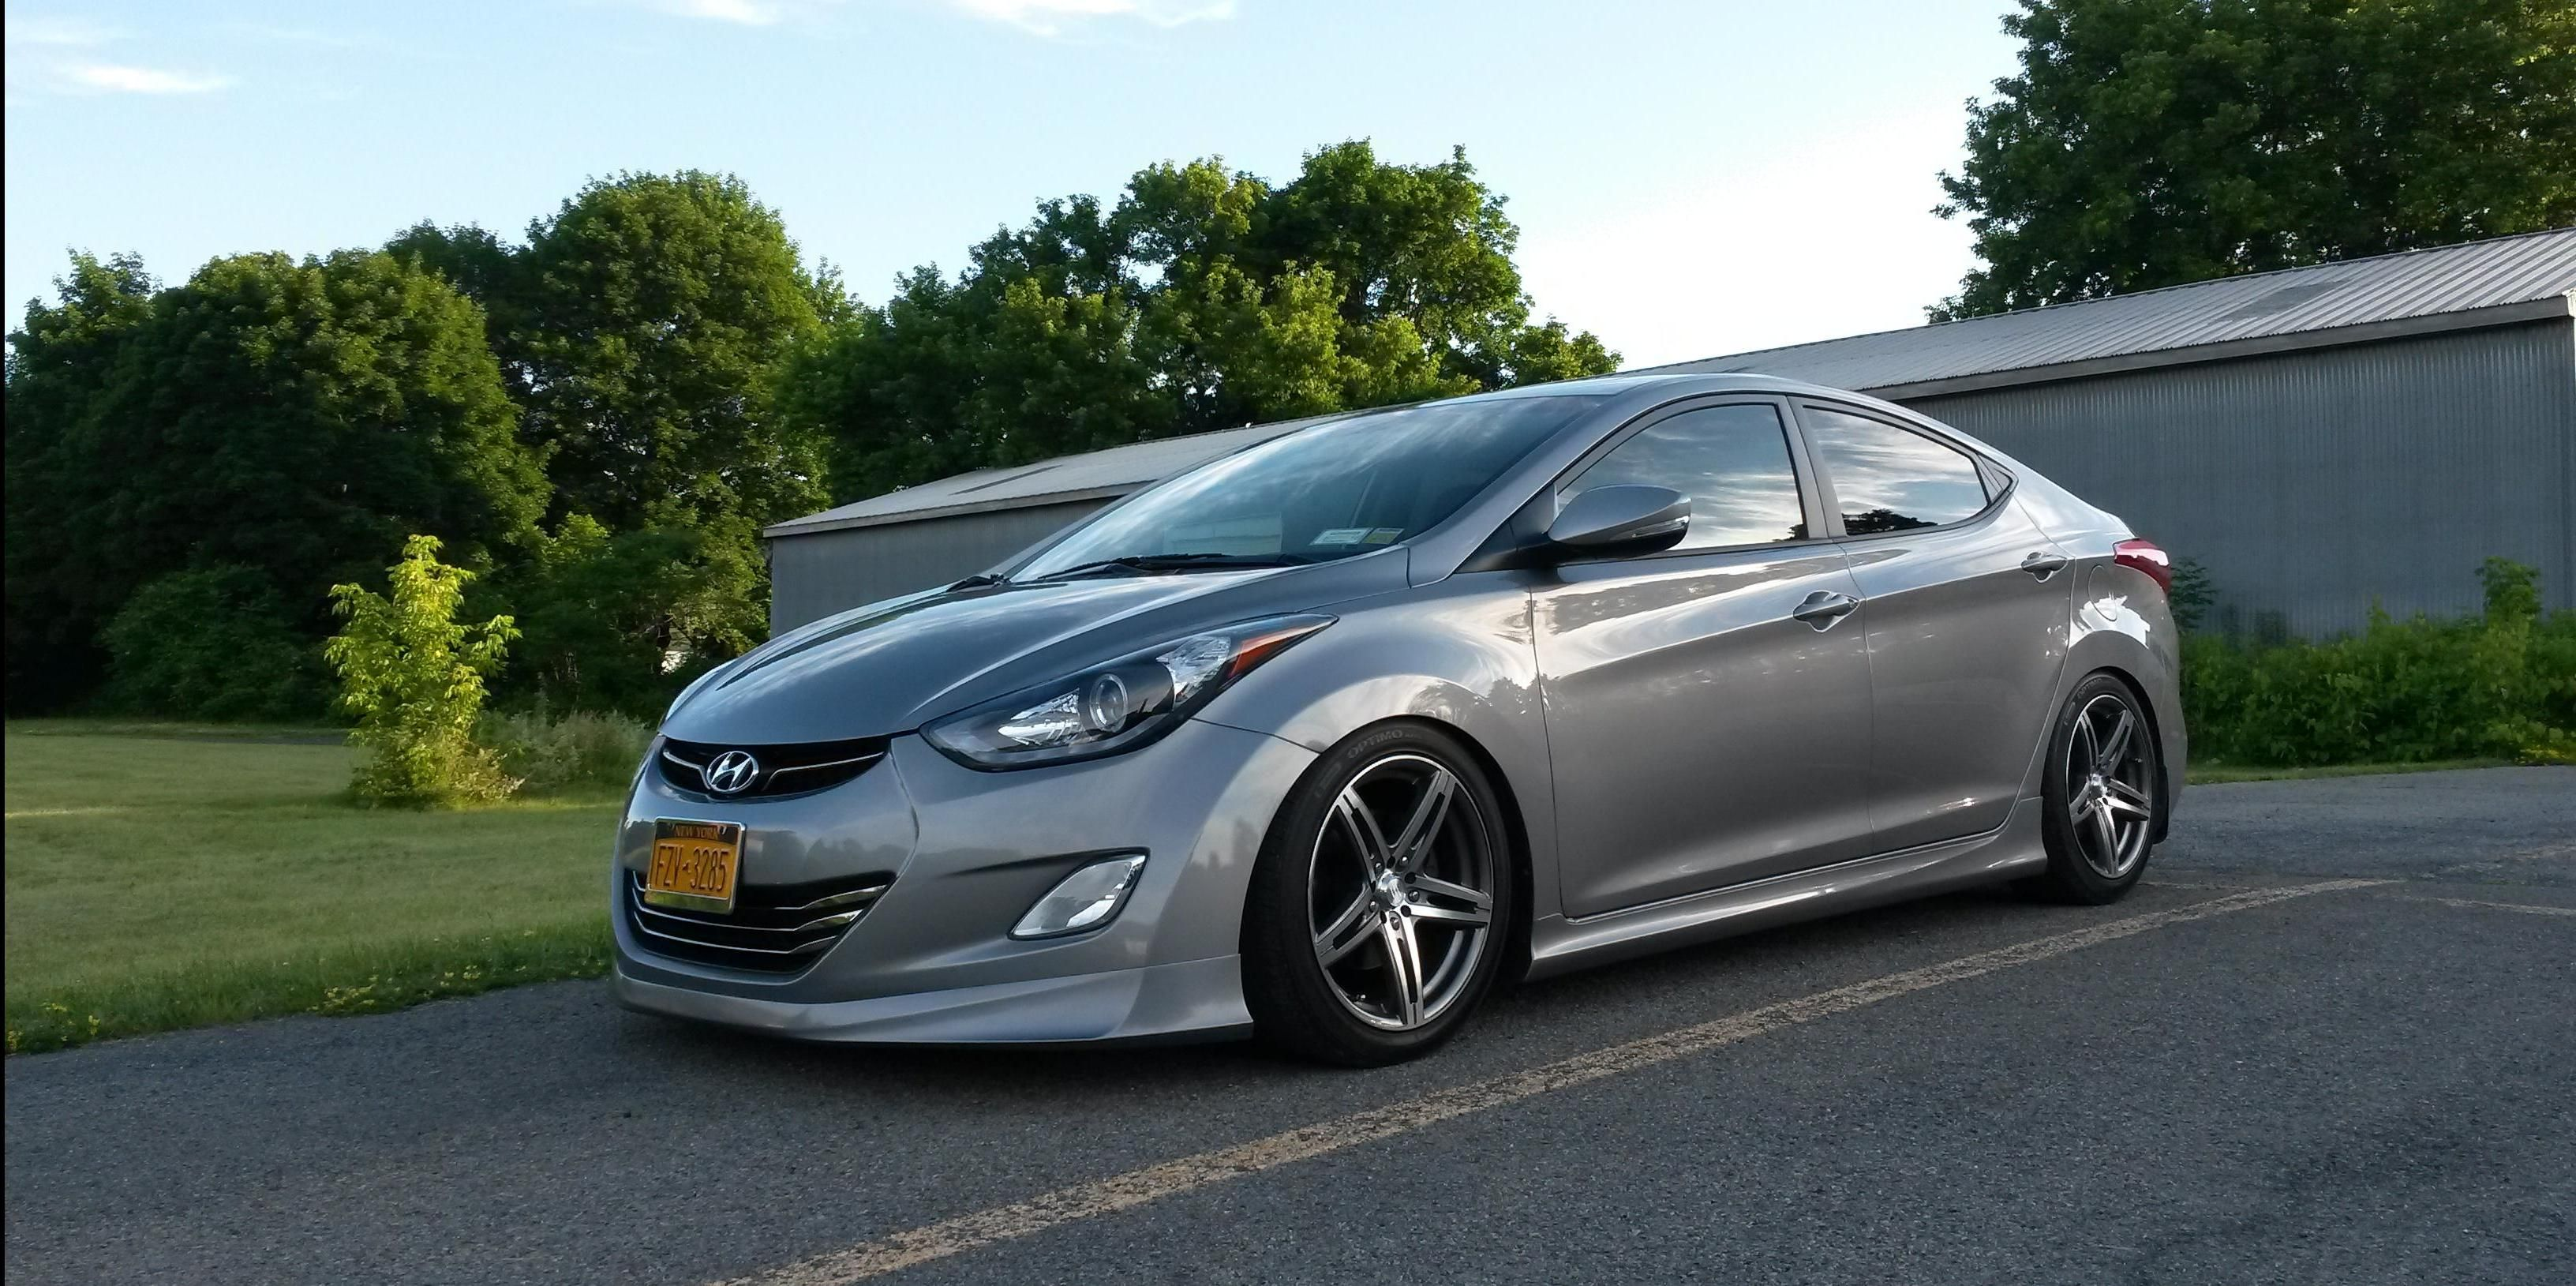 hyundai elantra custom wheels google search elantra custom wheels hyundai elantra hyundai elantra custom wheels google